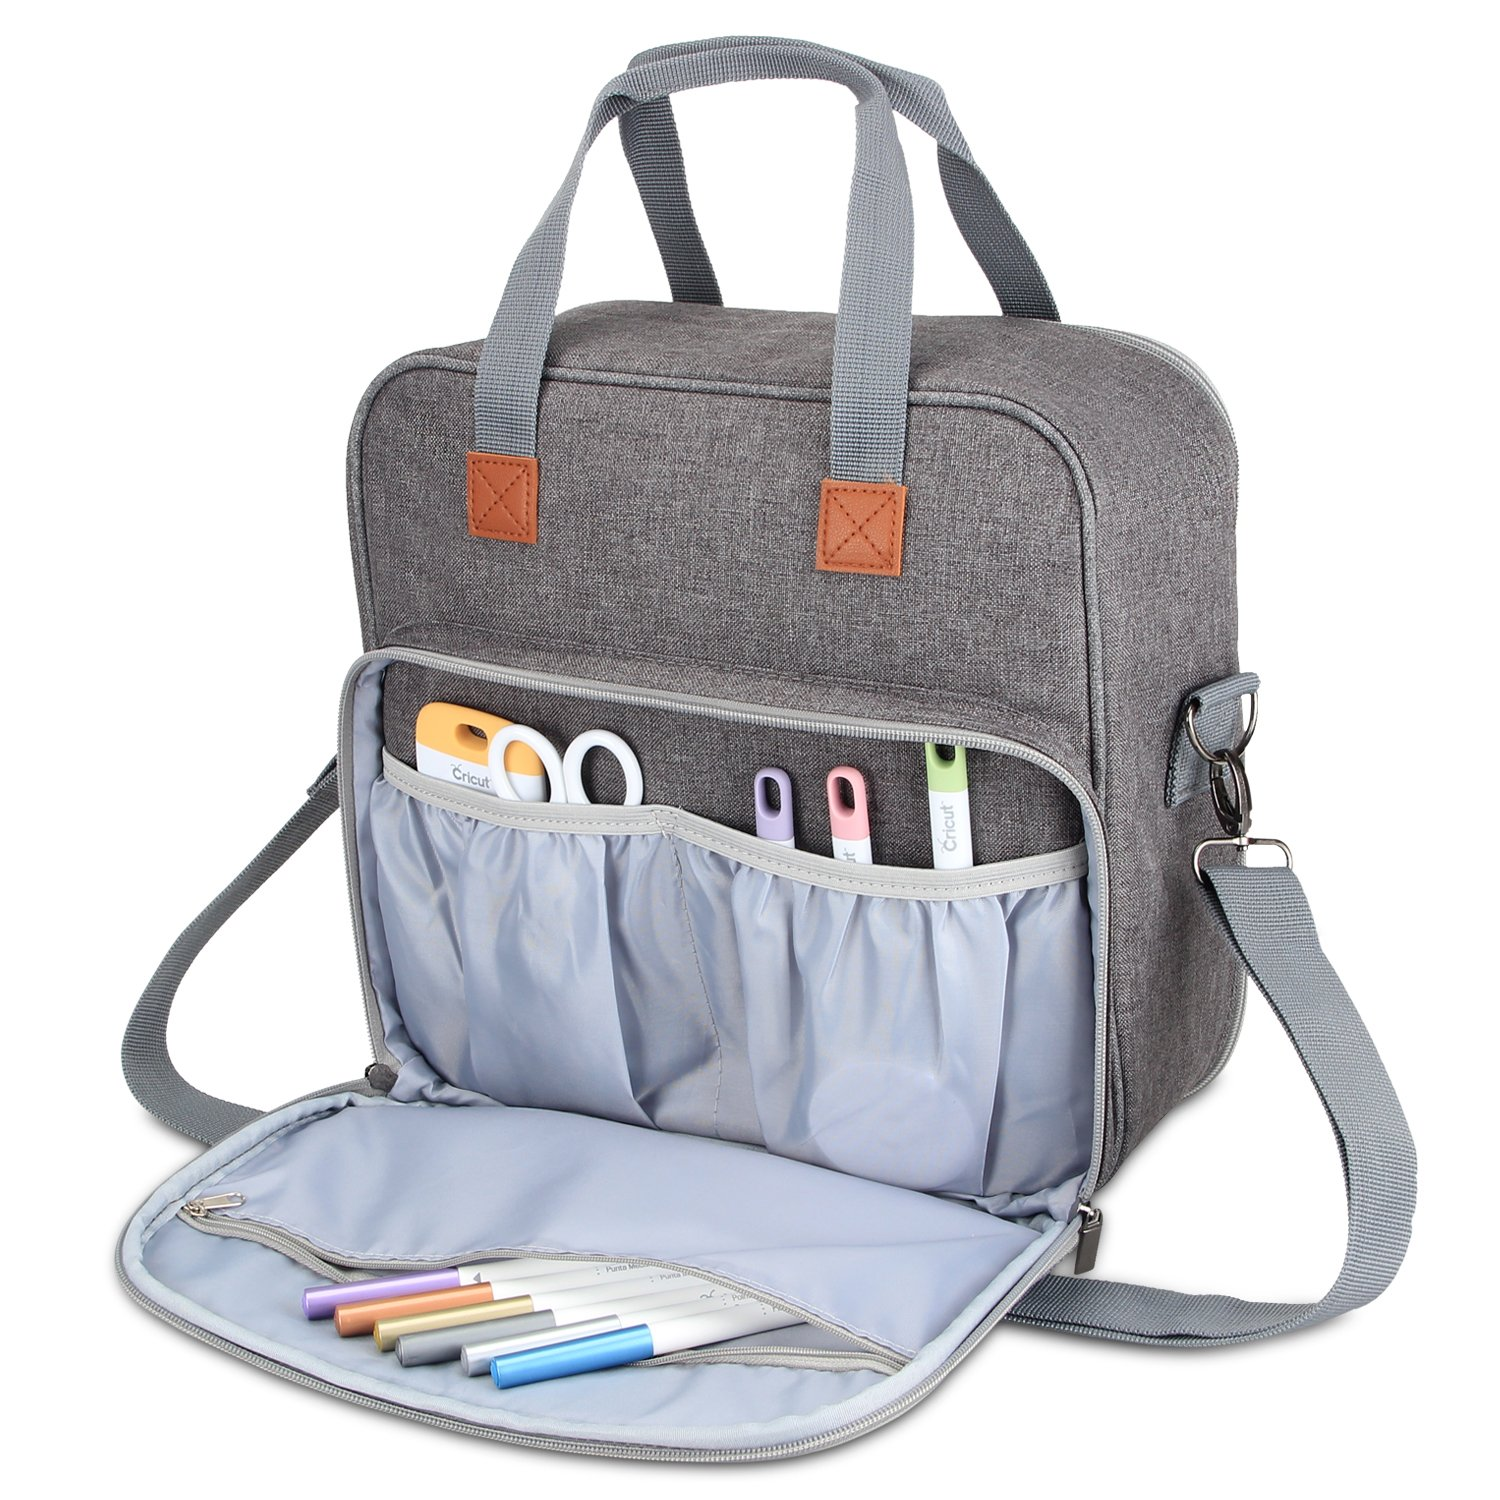 Luxja Carrying Case Compatible with Cricut Easy Press (9 inches x 9 inches), Tote Bag Compatible with Cricut Easy Press and Supplies (NO Accessories Included), Purple